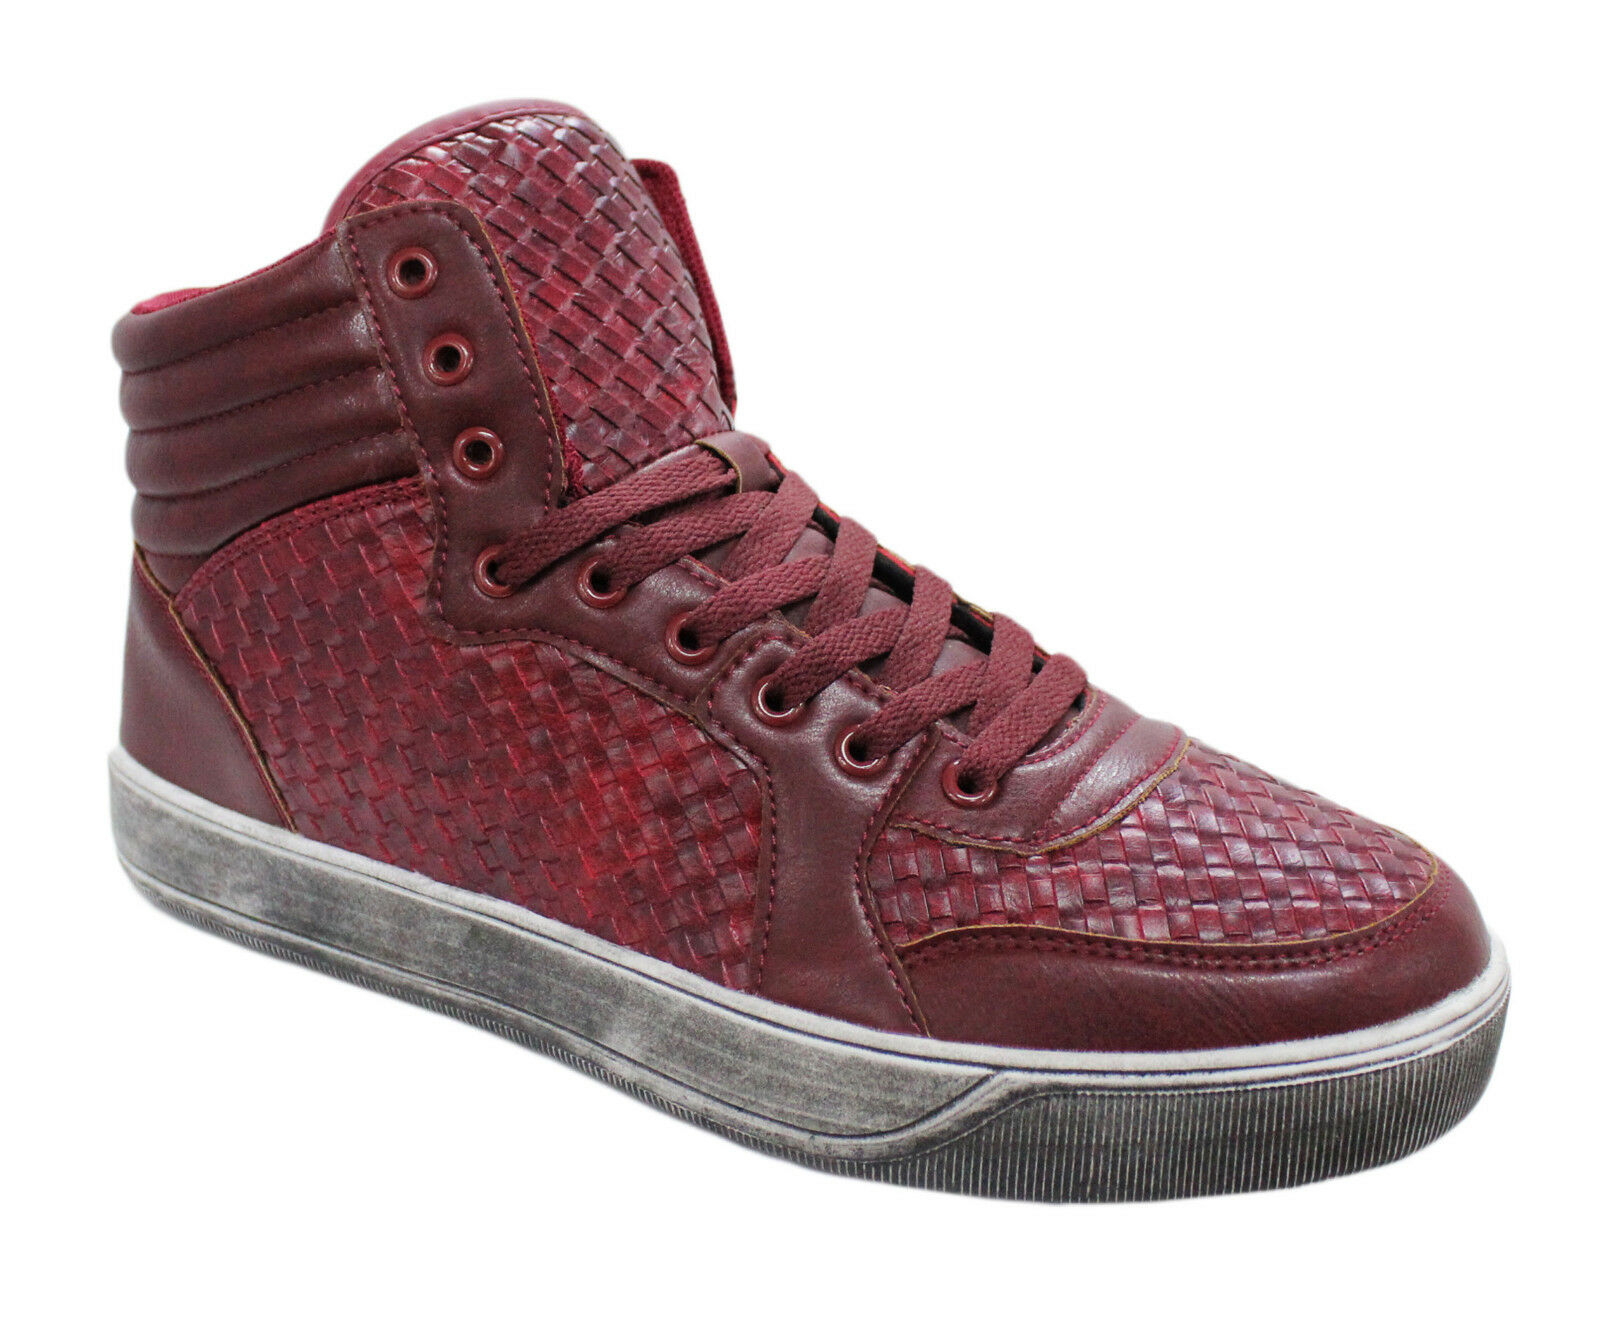 HIGH SNEAKERS MAN SHOES ARTISAN RED BURGUNDY CASUAL SHOES FAUX LEATHER